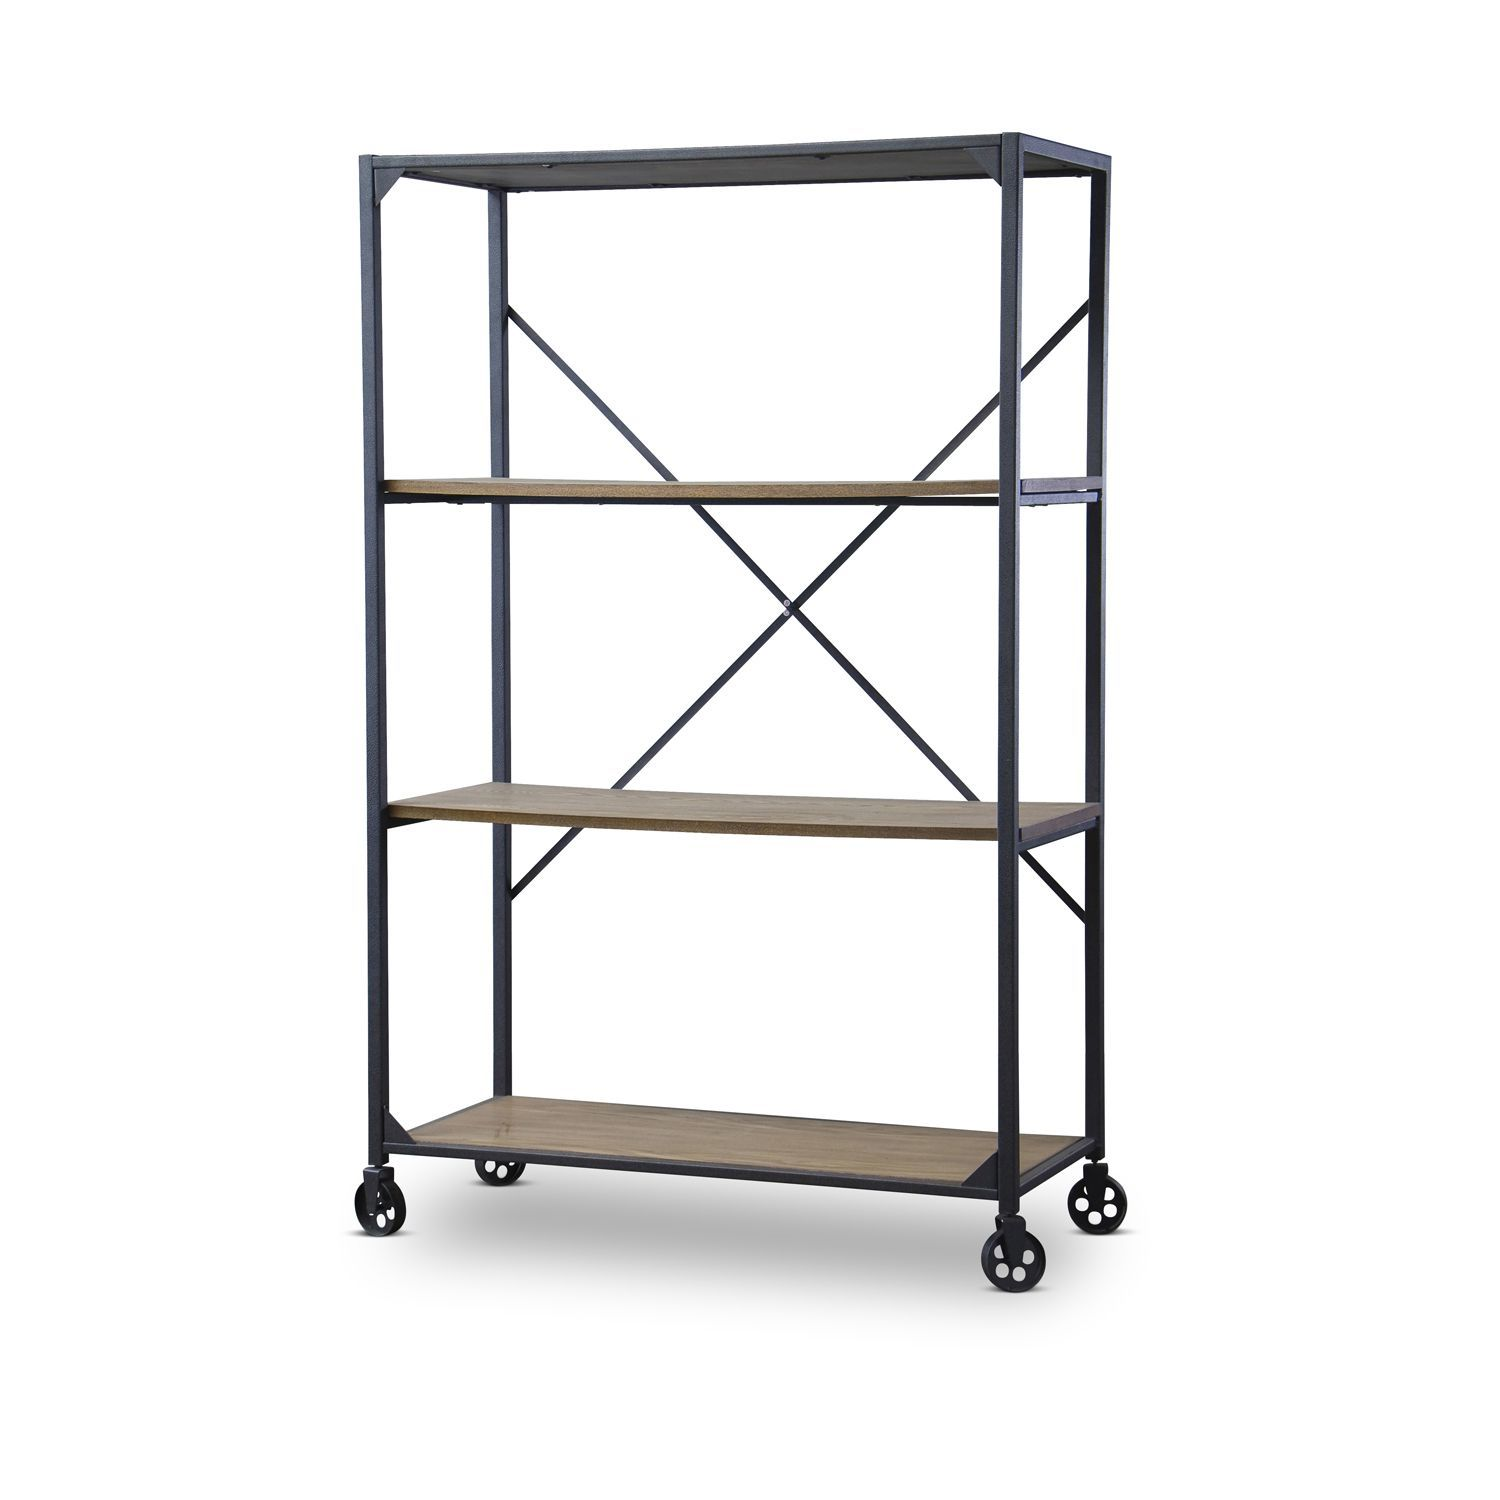 Uniting utility and convenience, our Caribou Wood and Metal Bookcase makes the most of a basic, solid design. This vintage industrial rustic bookcase features a great-looking distressed ash-veneer wood top and shelf.